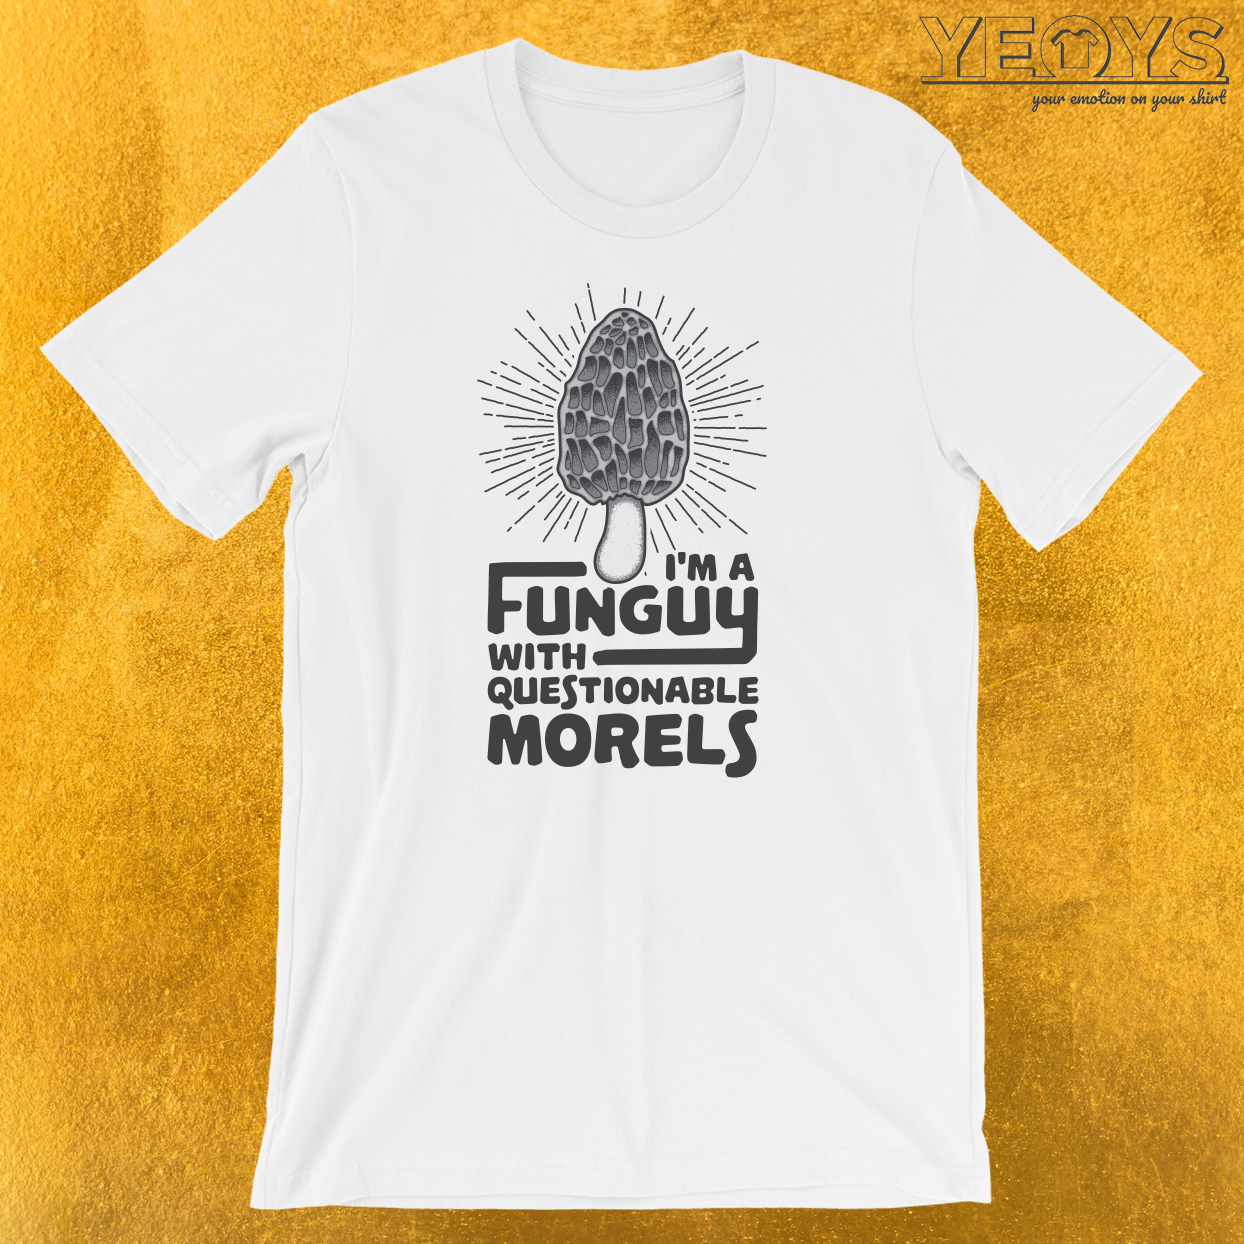 I'm A Funguy With Questionable Morels T-Shirt